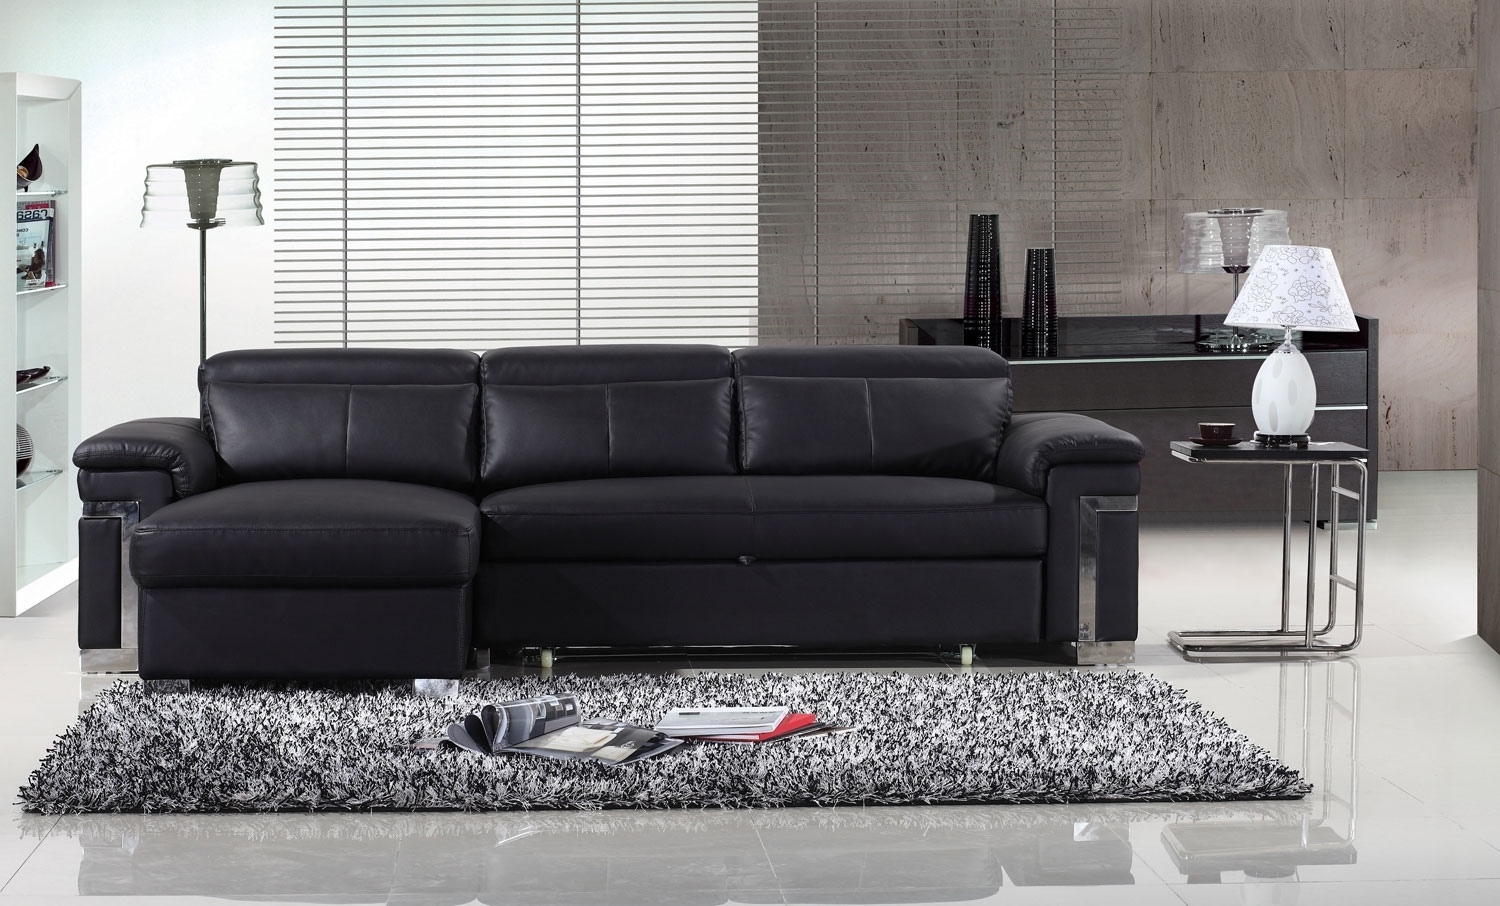 Sofa Black Leather Silo Christmas Tree Farm Intended For 3 Seater Leather Sofas (Image 11 of 15)